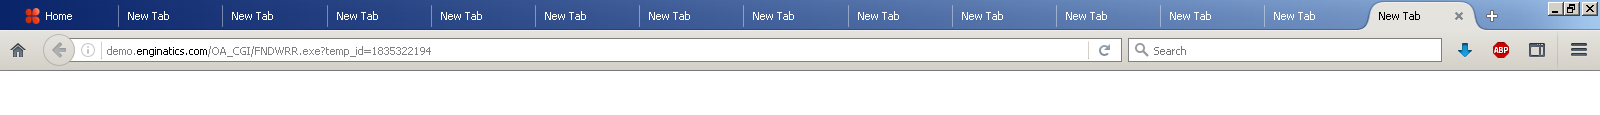 New tabs opened by Oracle EBS Blitz Report download